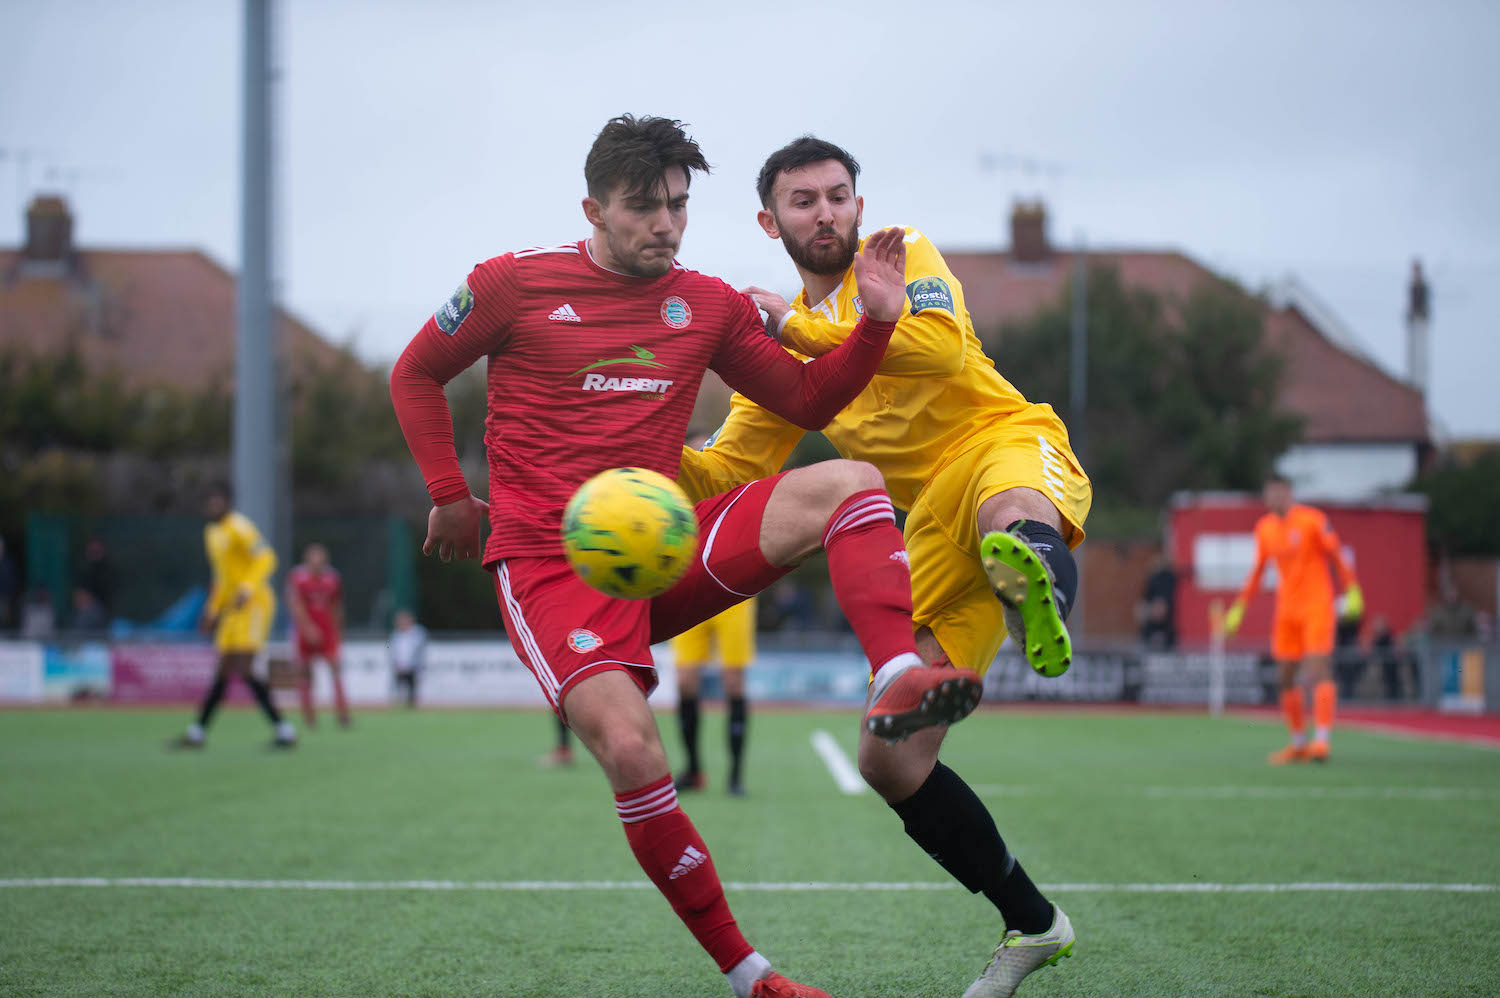 Read the full article - Reds (finally) make the trip up to Scholars